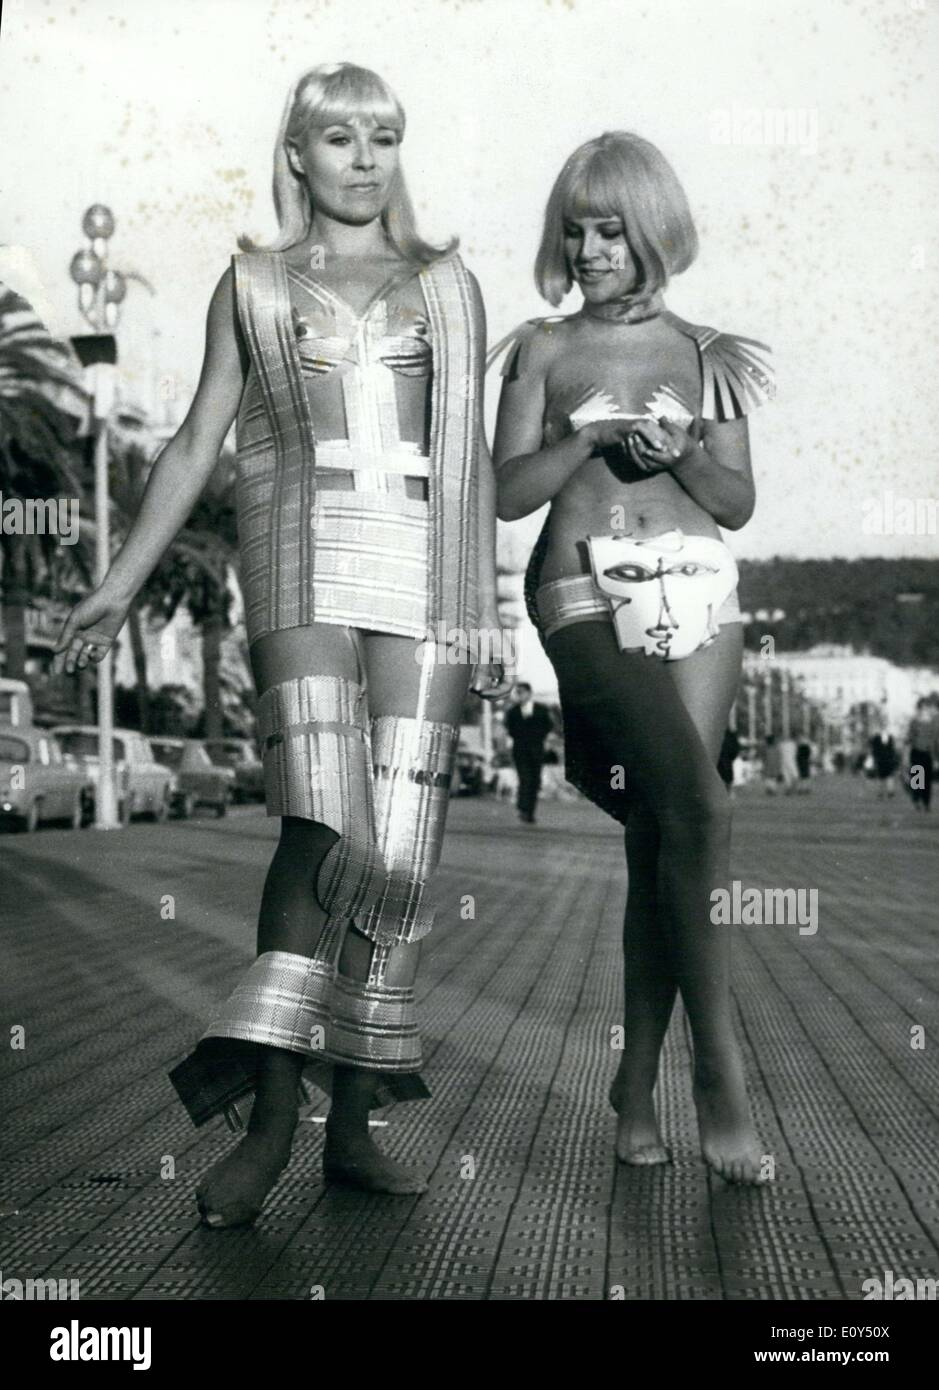 Nov. 07, 1968 - Futuristic Lunar Styles in Nice Fashion Show - Stock Image